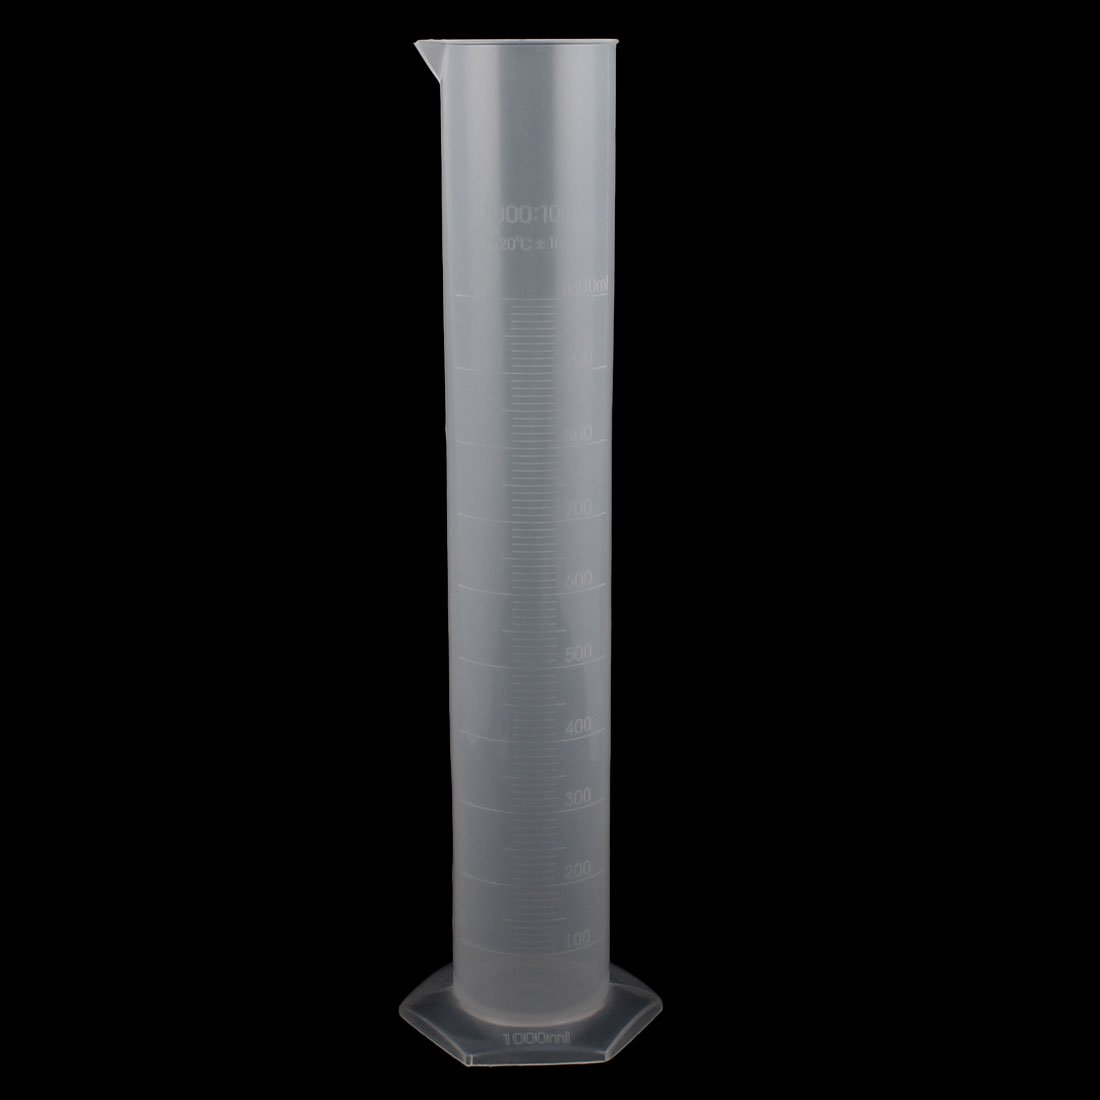 uxcell 1000mL Clear White Plastic Hex Base Graduated Cylinder a16032400ux0020